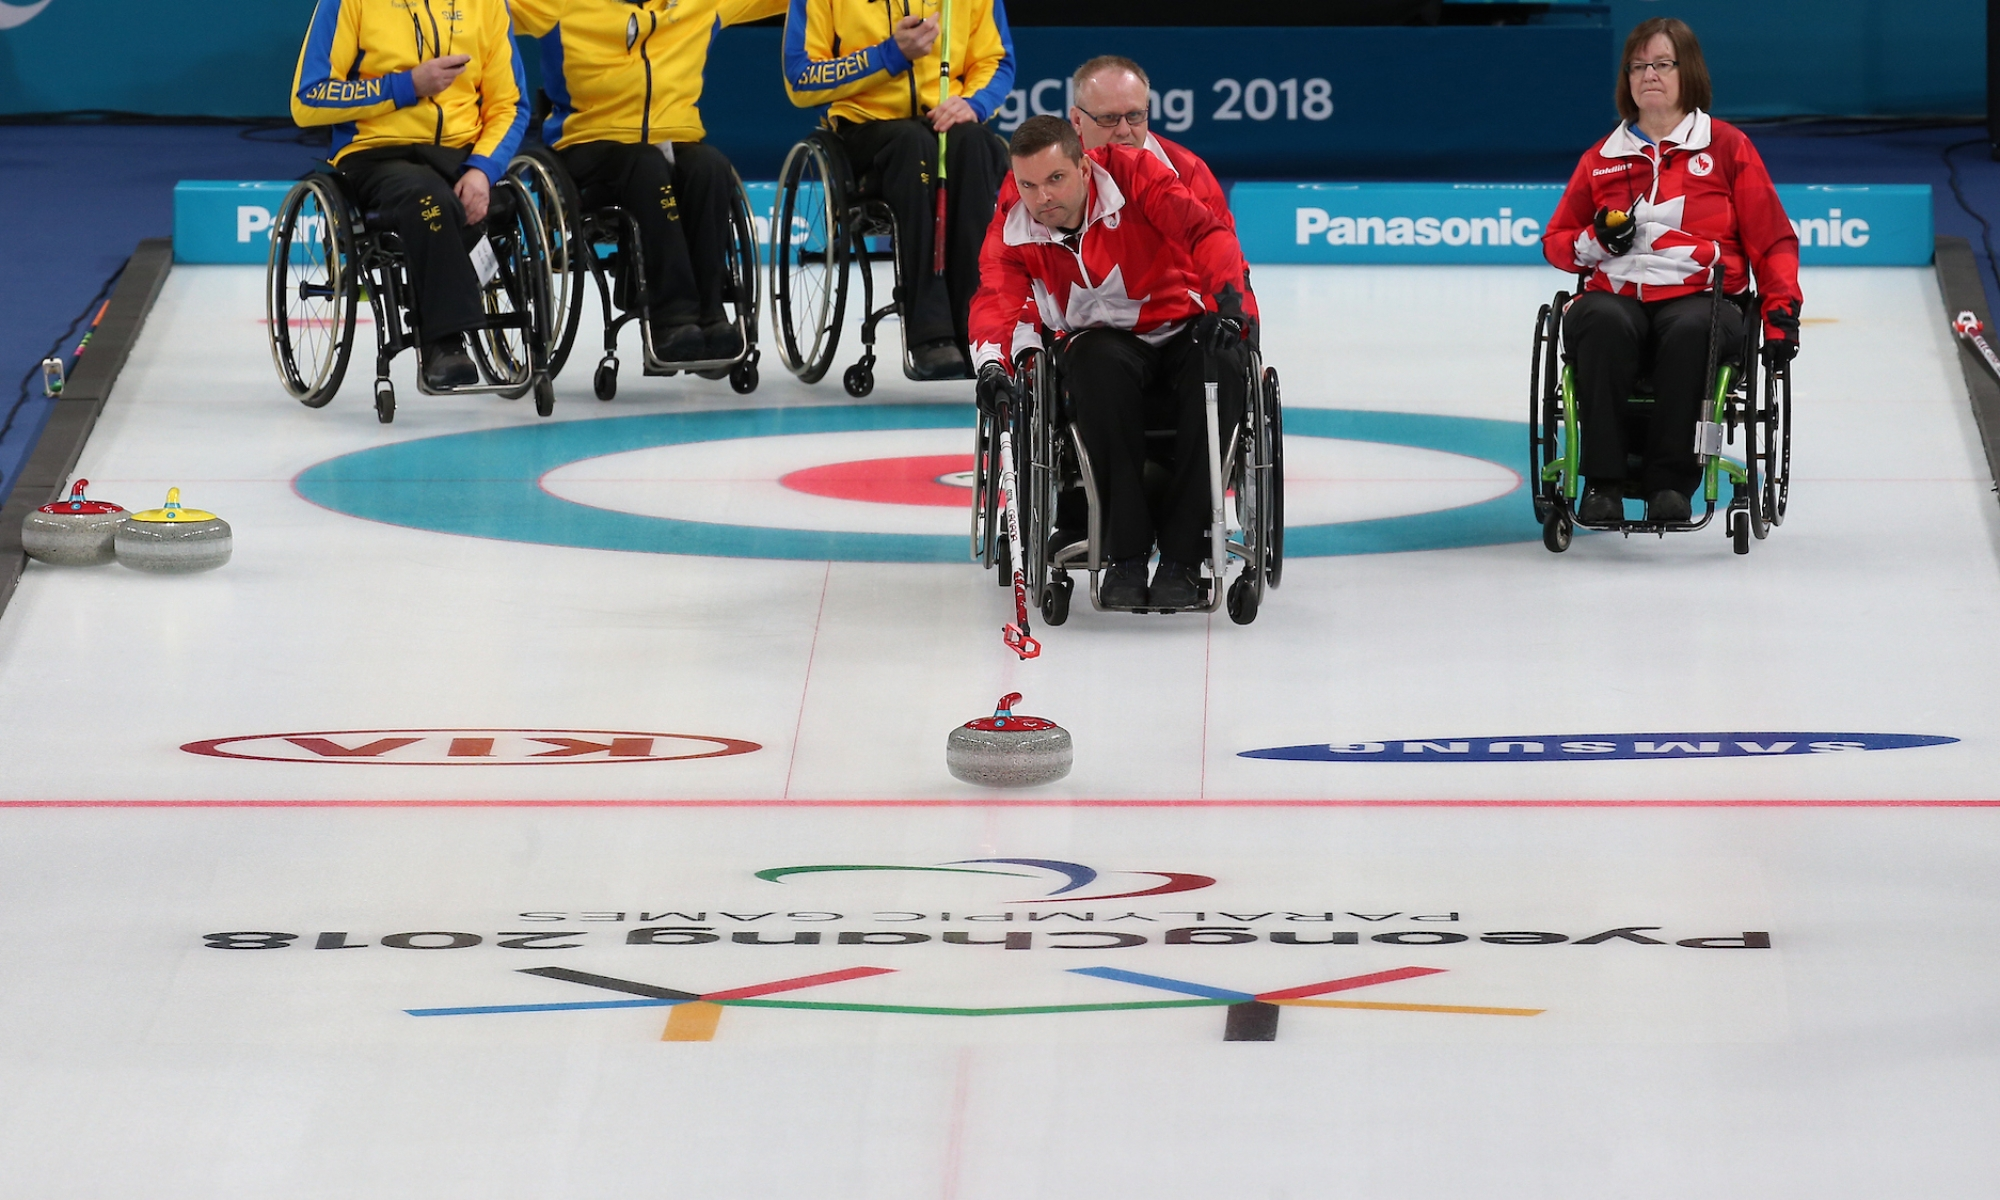 Mark Ideson wheelchair curling PyeongChang